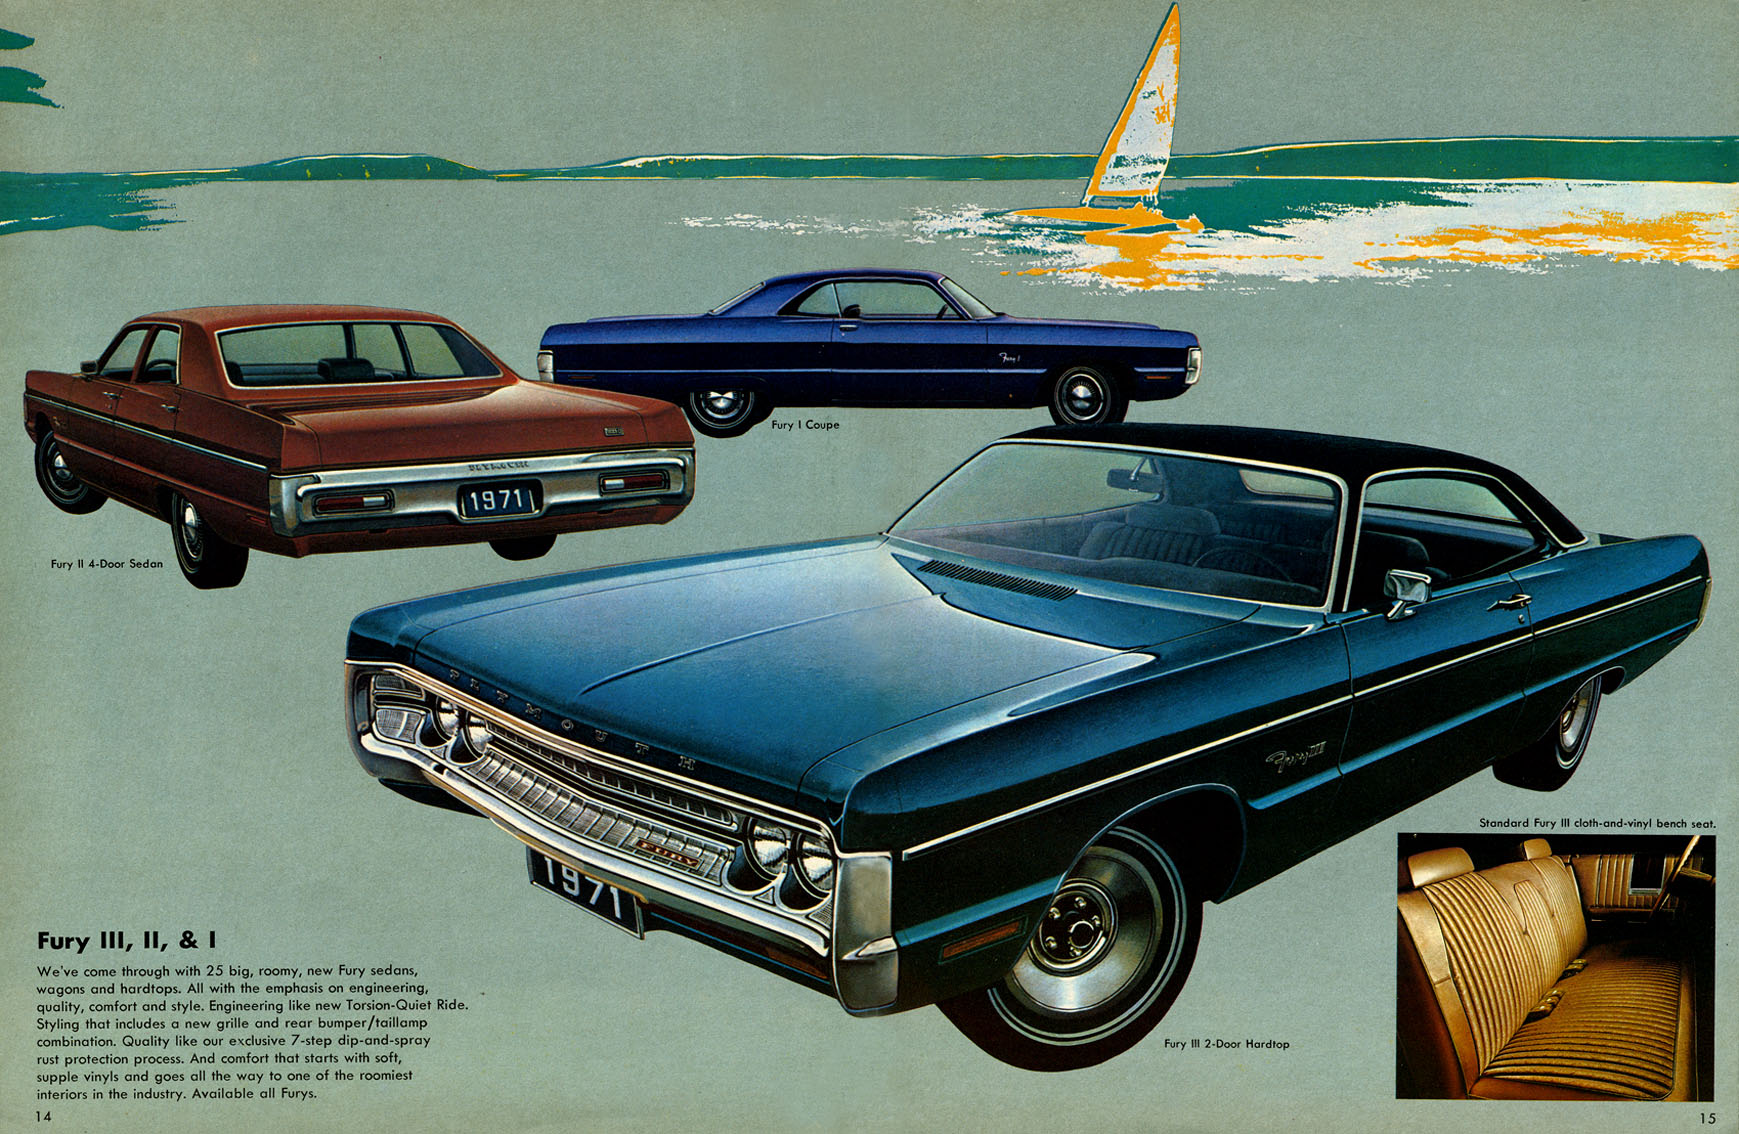 Brochure Classic 1971 Plymouth Fury I Coupe The Rarest Of All 69 Radiator Course This Is Same Rendering Just A Different Background But From